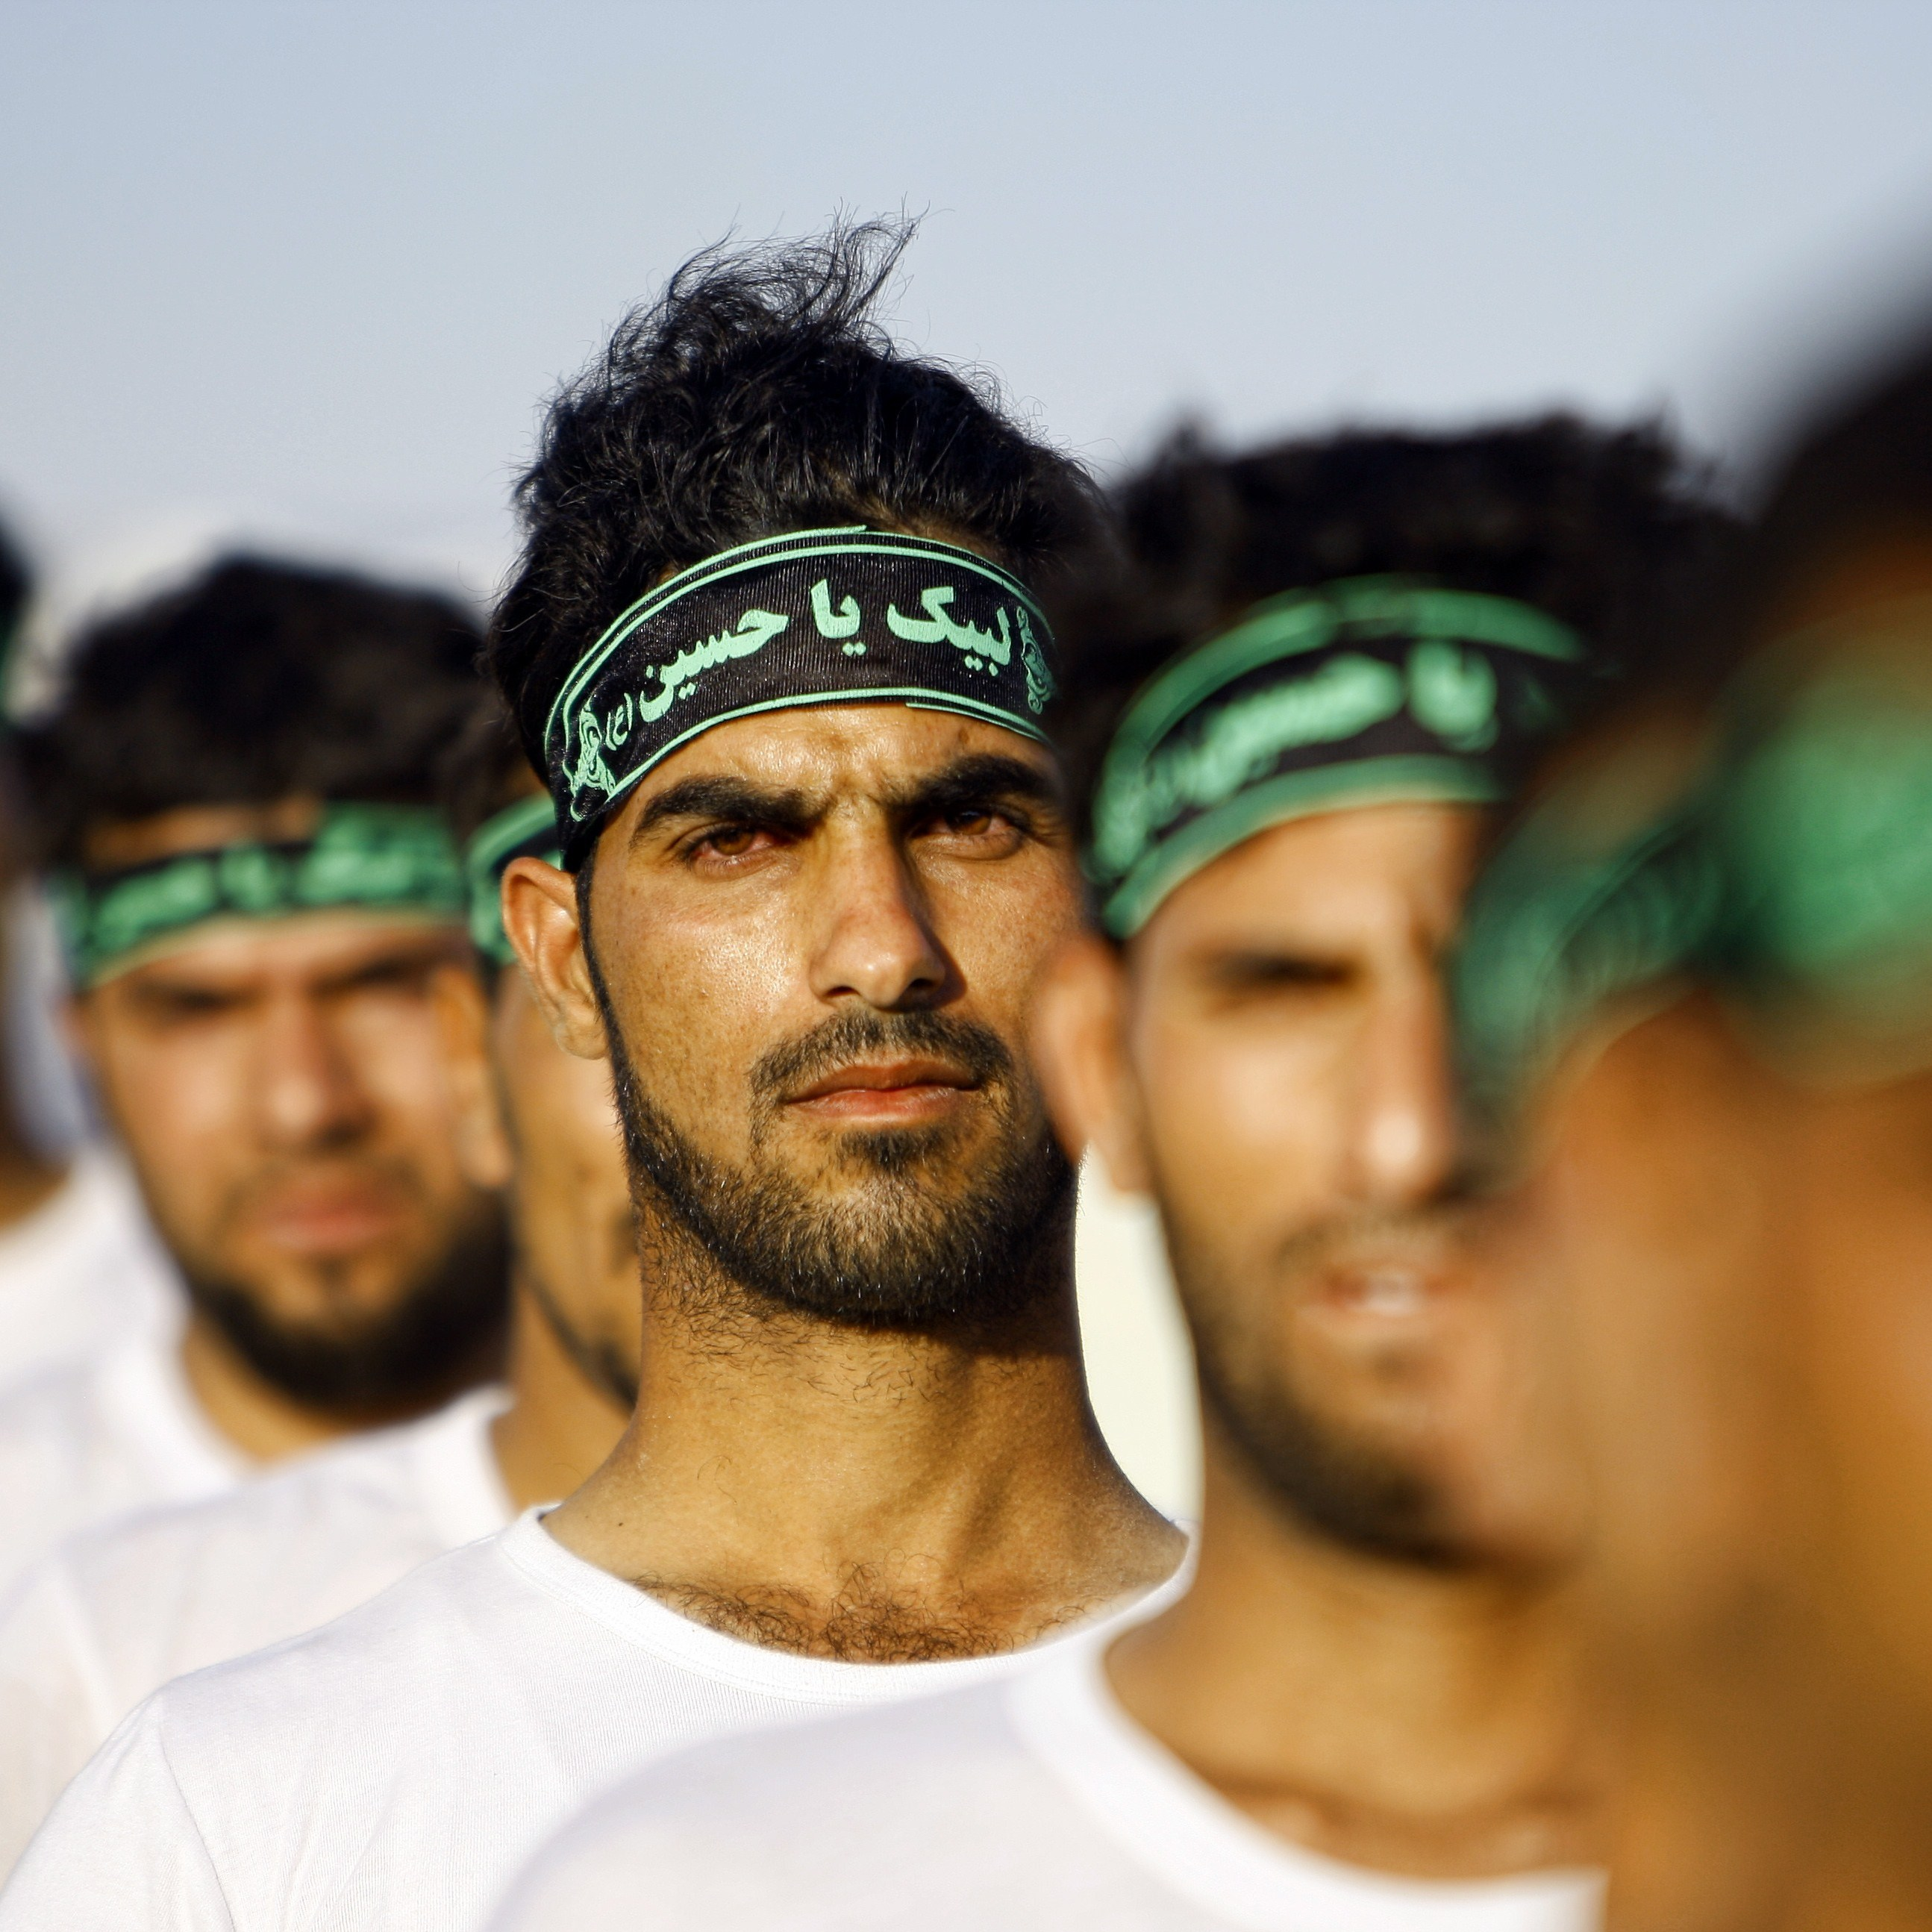 Iraqi Shiite volunteers with the Labayk ya Hussein Brigade take part in a training session in the holy city of Najaf in late June. Clerics in the city called for Shiites to step forward and fight the Sunni group formerly known as the Islamic State of Iraq and Syria (which now calls itself simply the Islamic State).